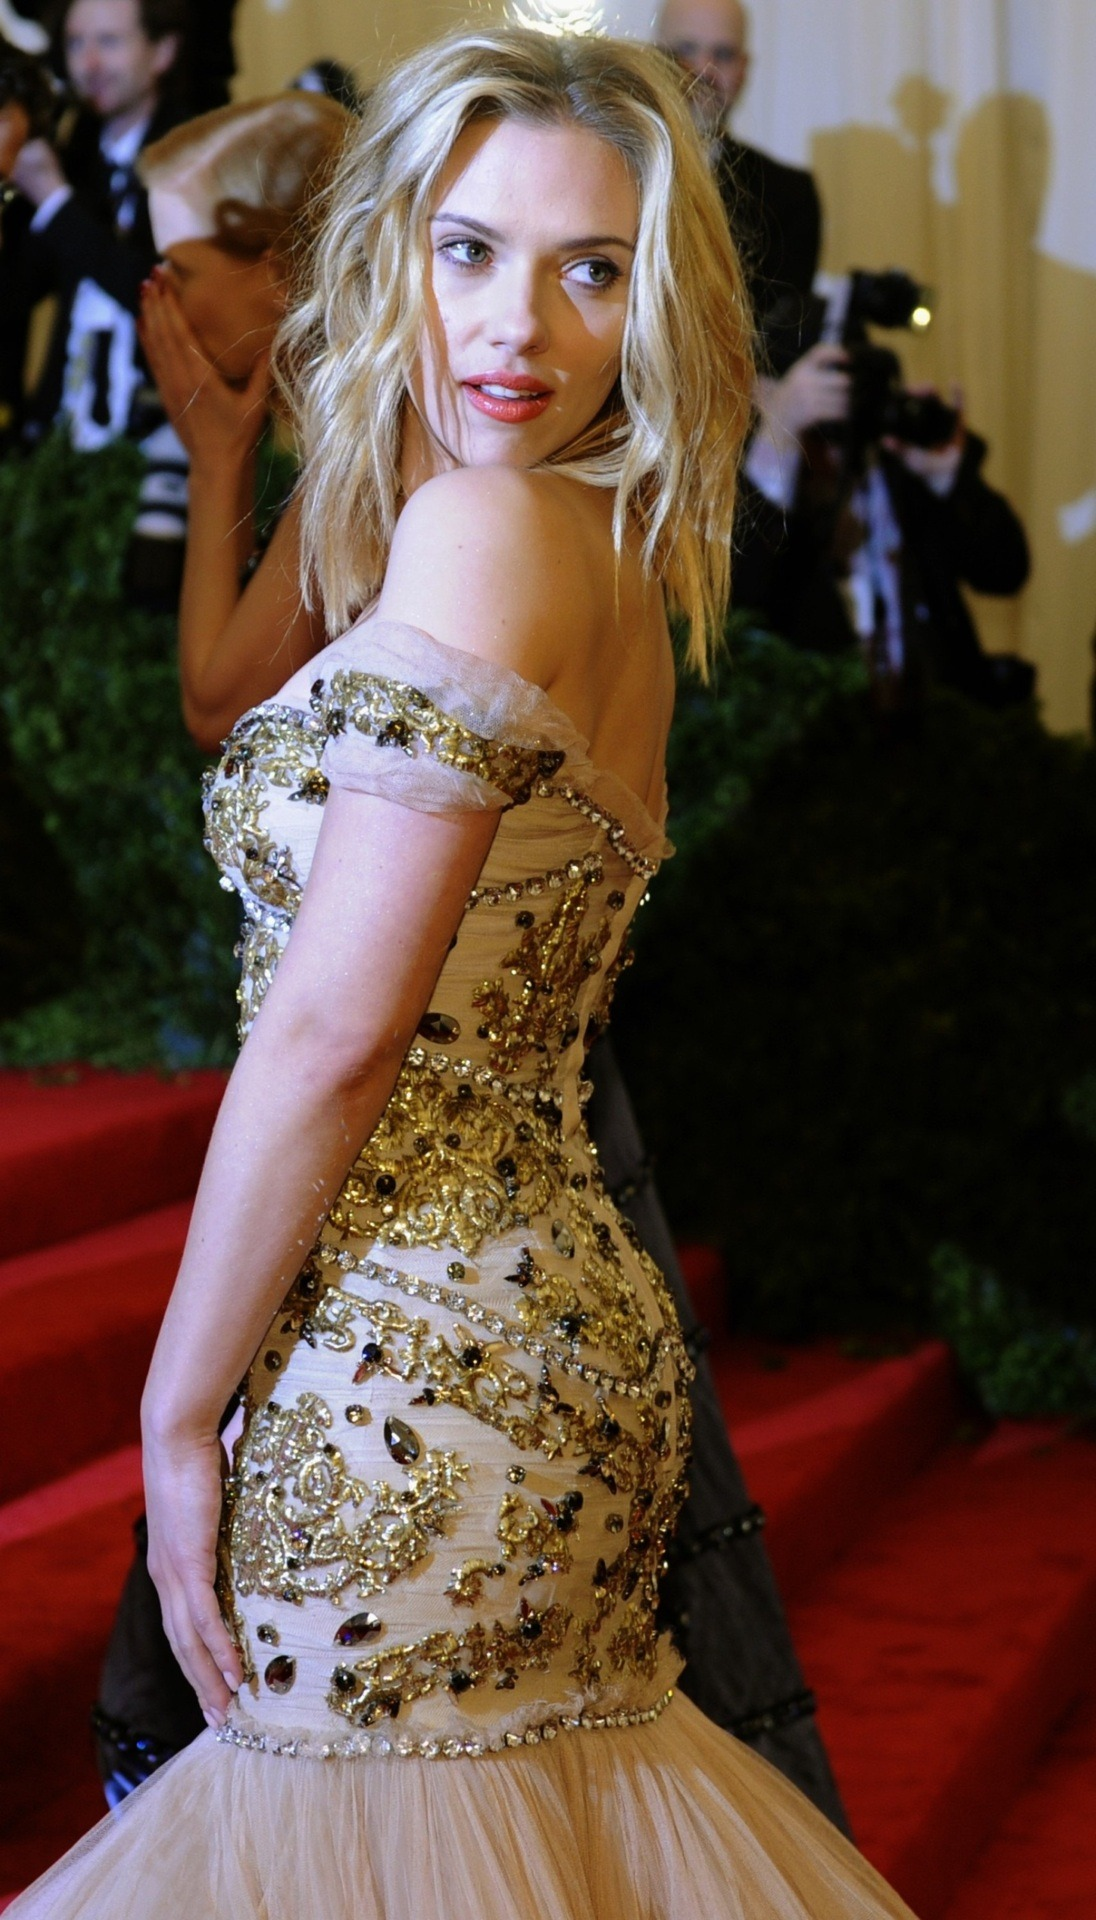 suicideblonde:  Scarlett Johansson in Dolce and Gabbana at the Costume Gala, May 7th